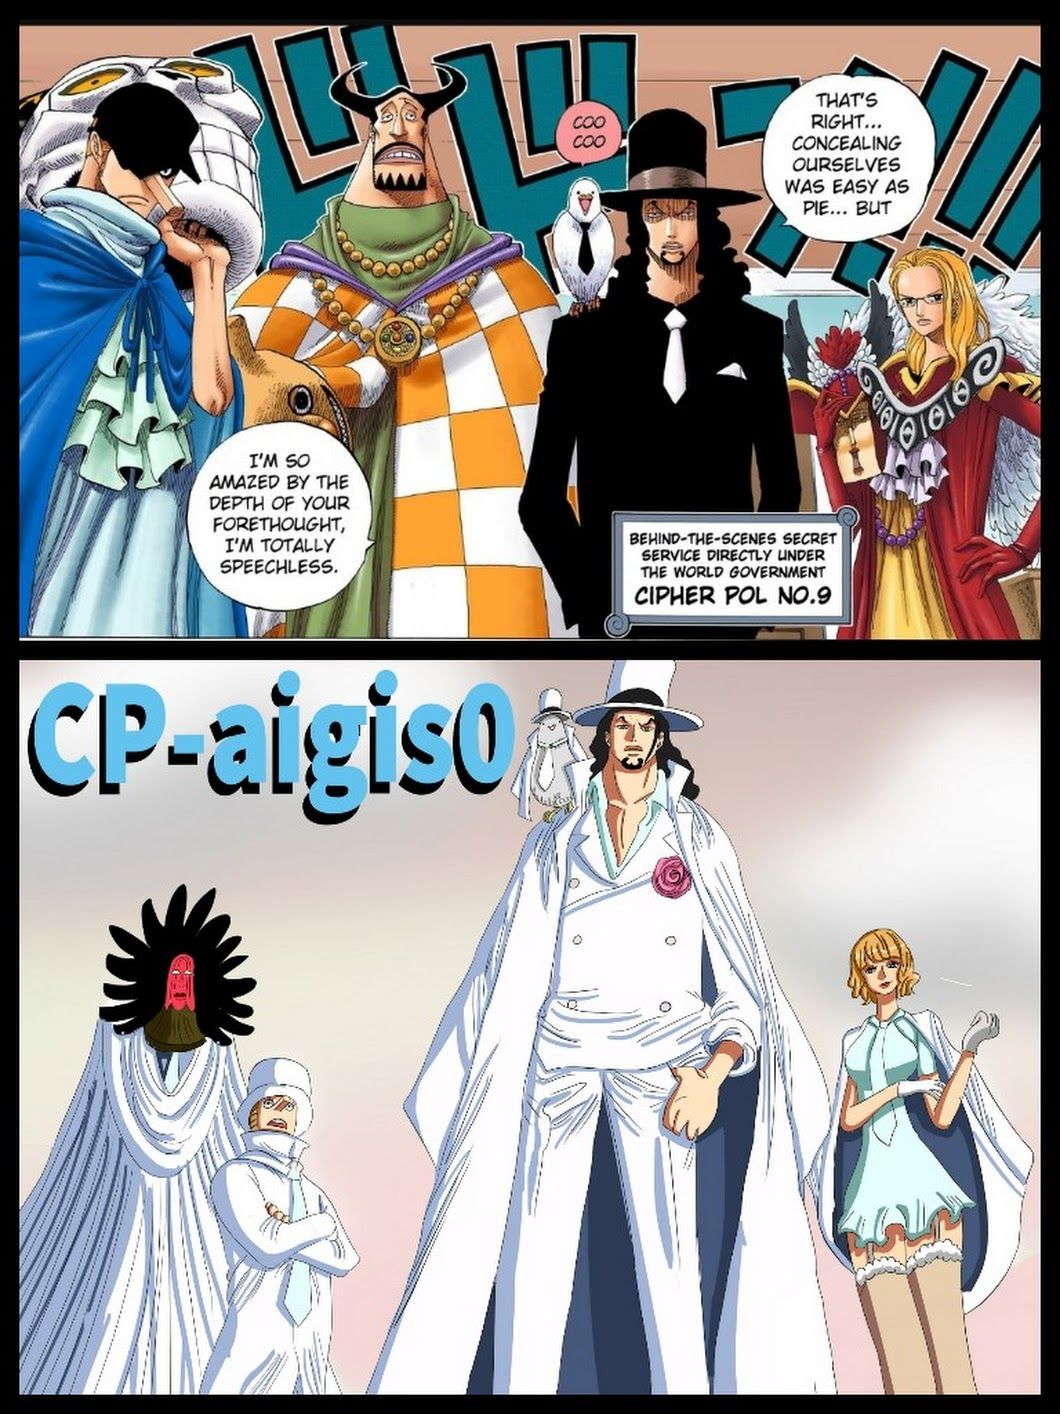 Cp9-Cp0 | One piece | One piece, One piece anime, Anime one